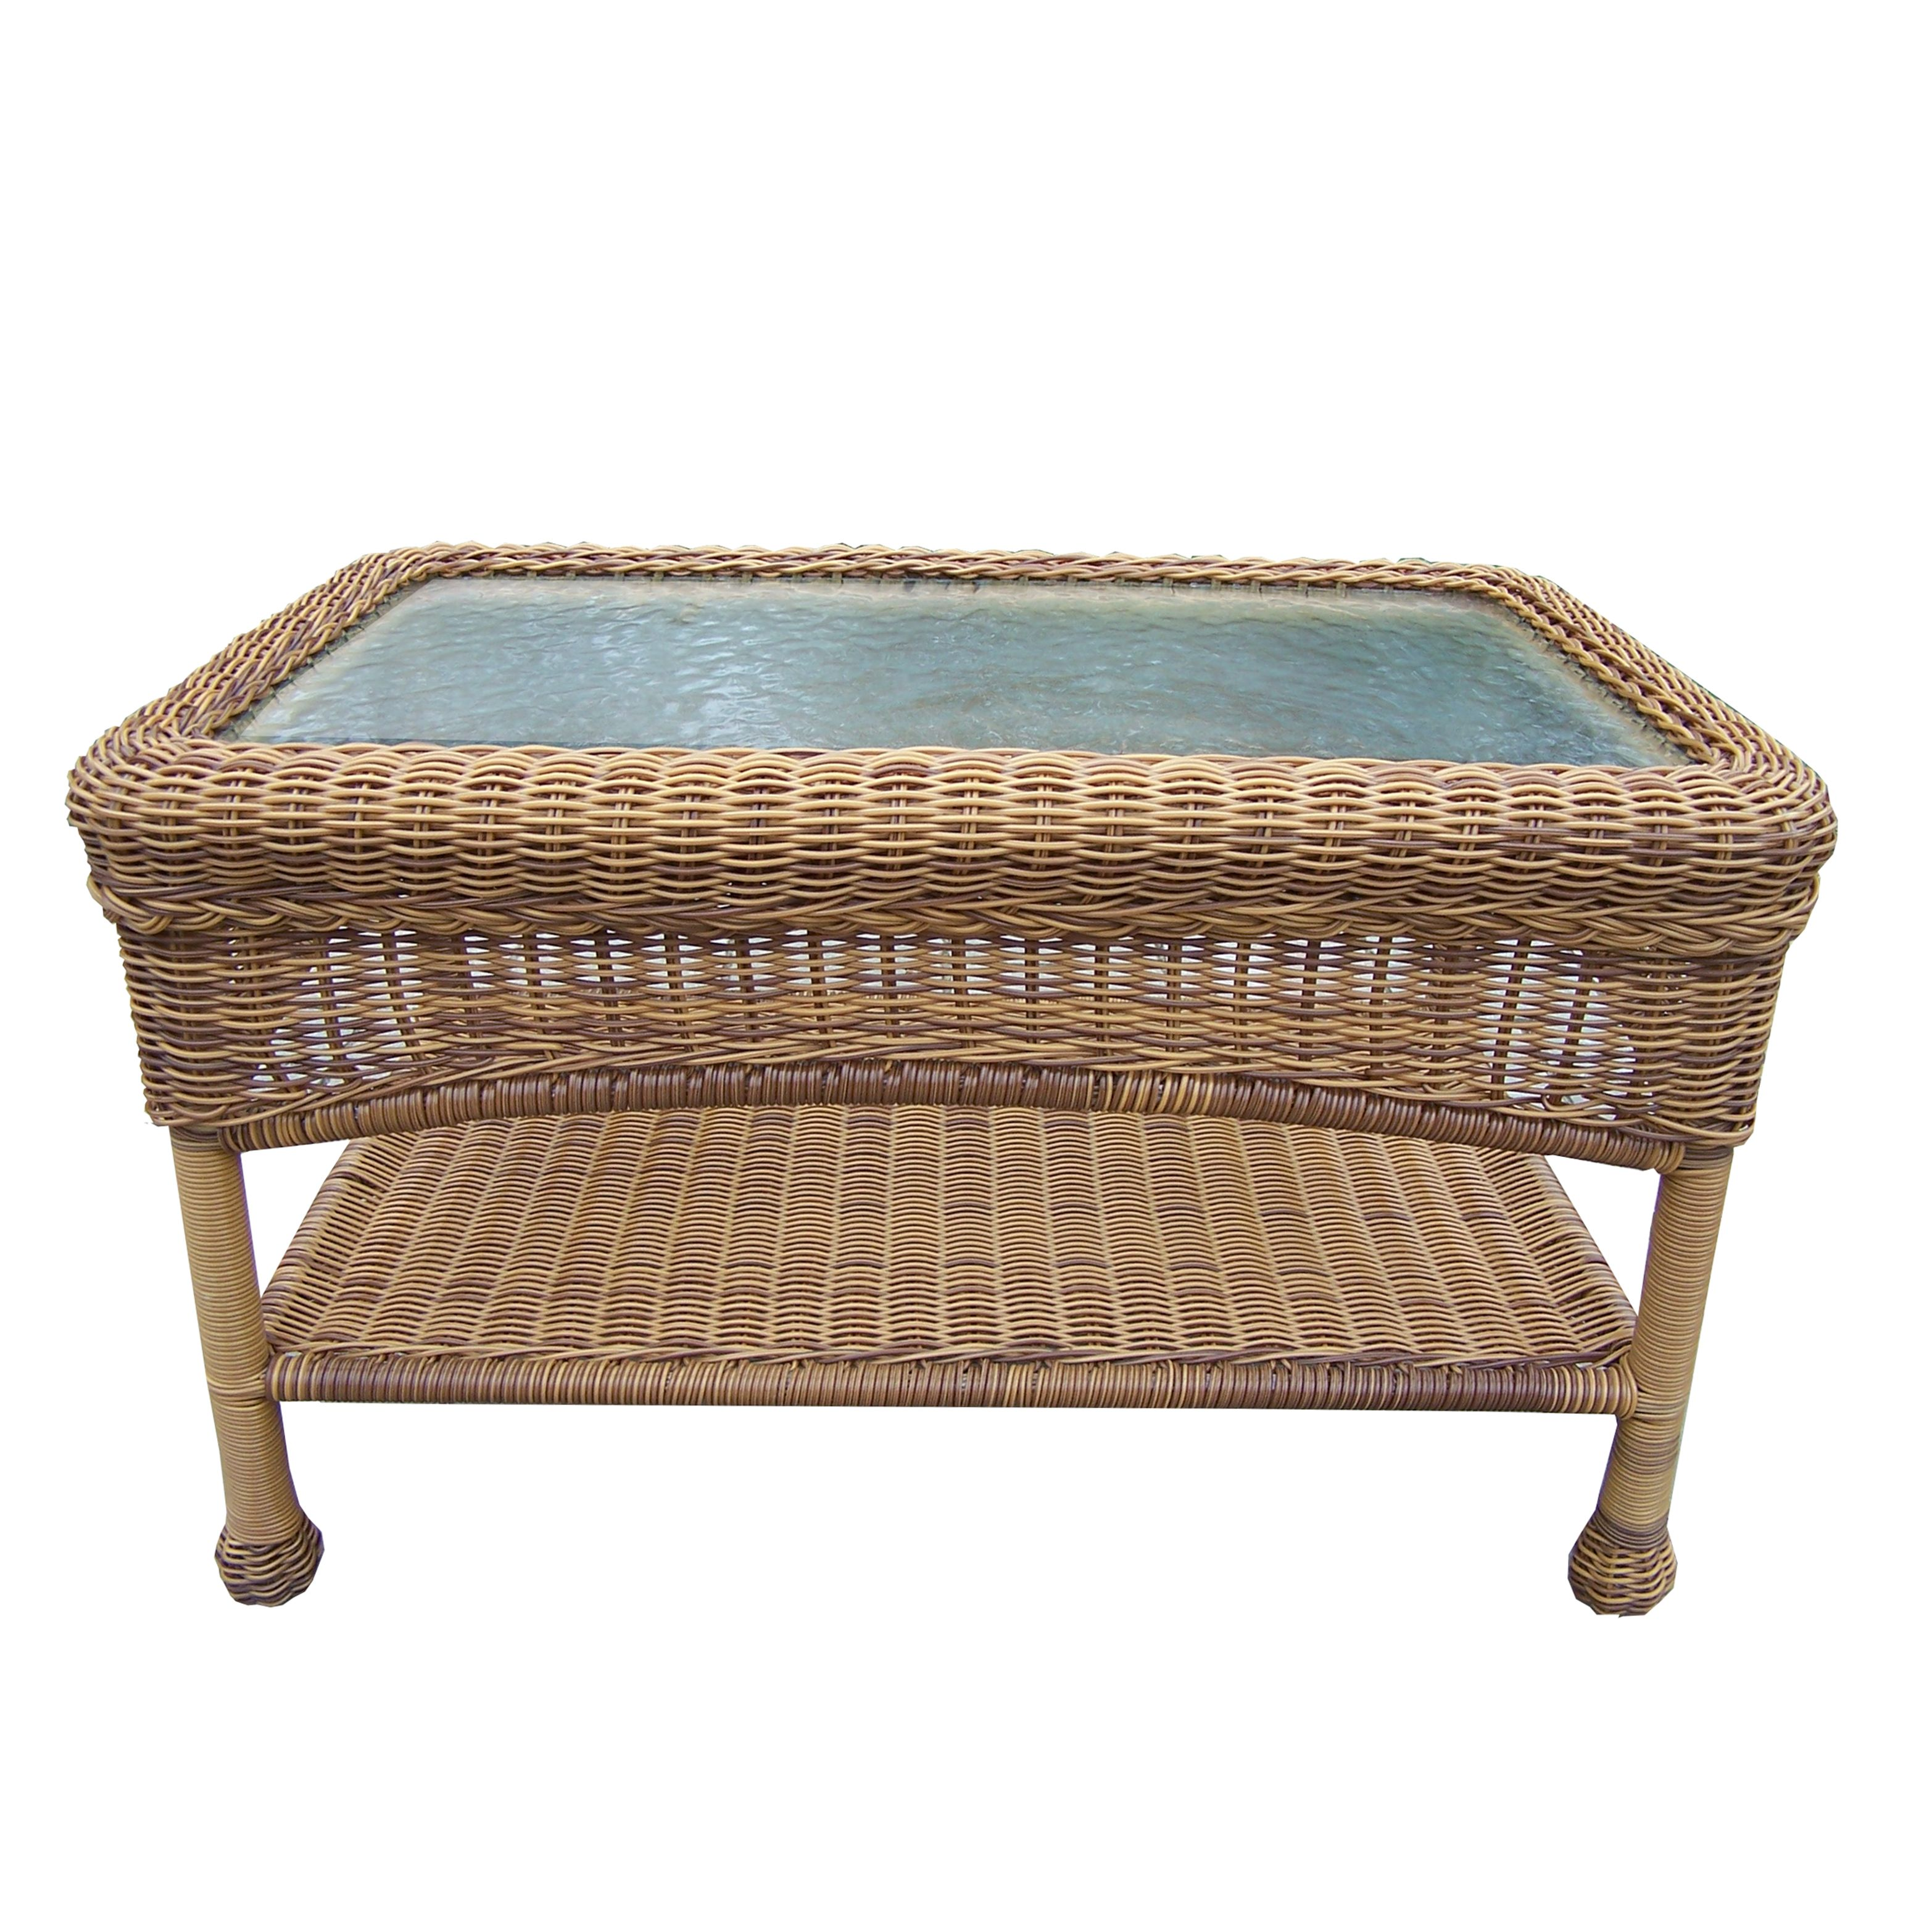 29 Natural Brown Two Level Resin Wicker Coffee Table With Glass Top 31011712 Wicker Coffee Table Wicker Furniture Outdoor Coffee Tables